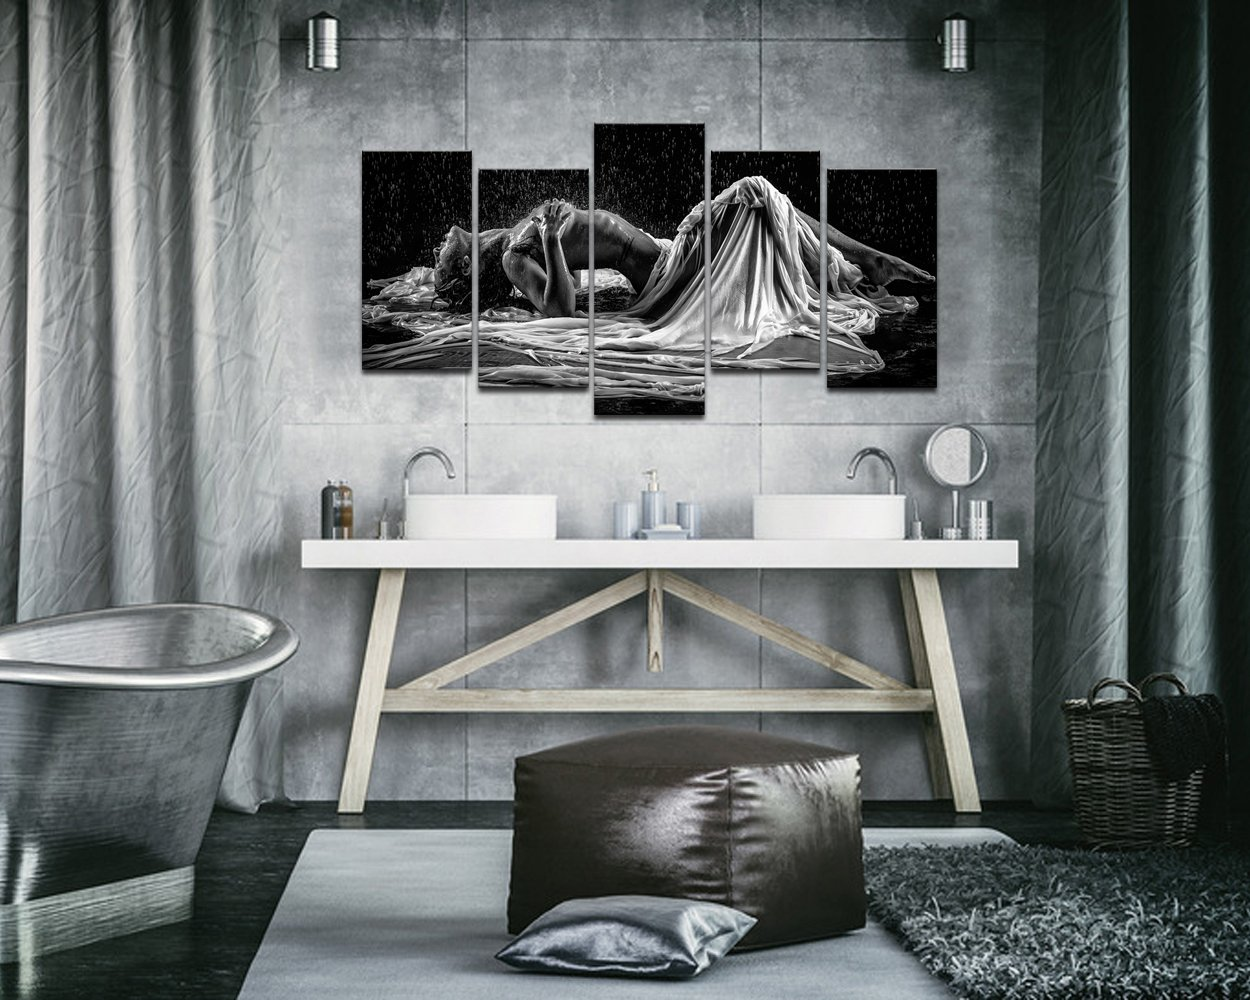 sechars – Naked Girl in The Rain Picture Canvas Prints,Black and White Sexy Woman Wall Art,5 Panels Art Framed for Modern Bedroom Wall Decoration